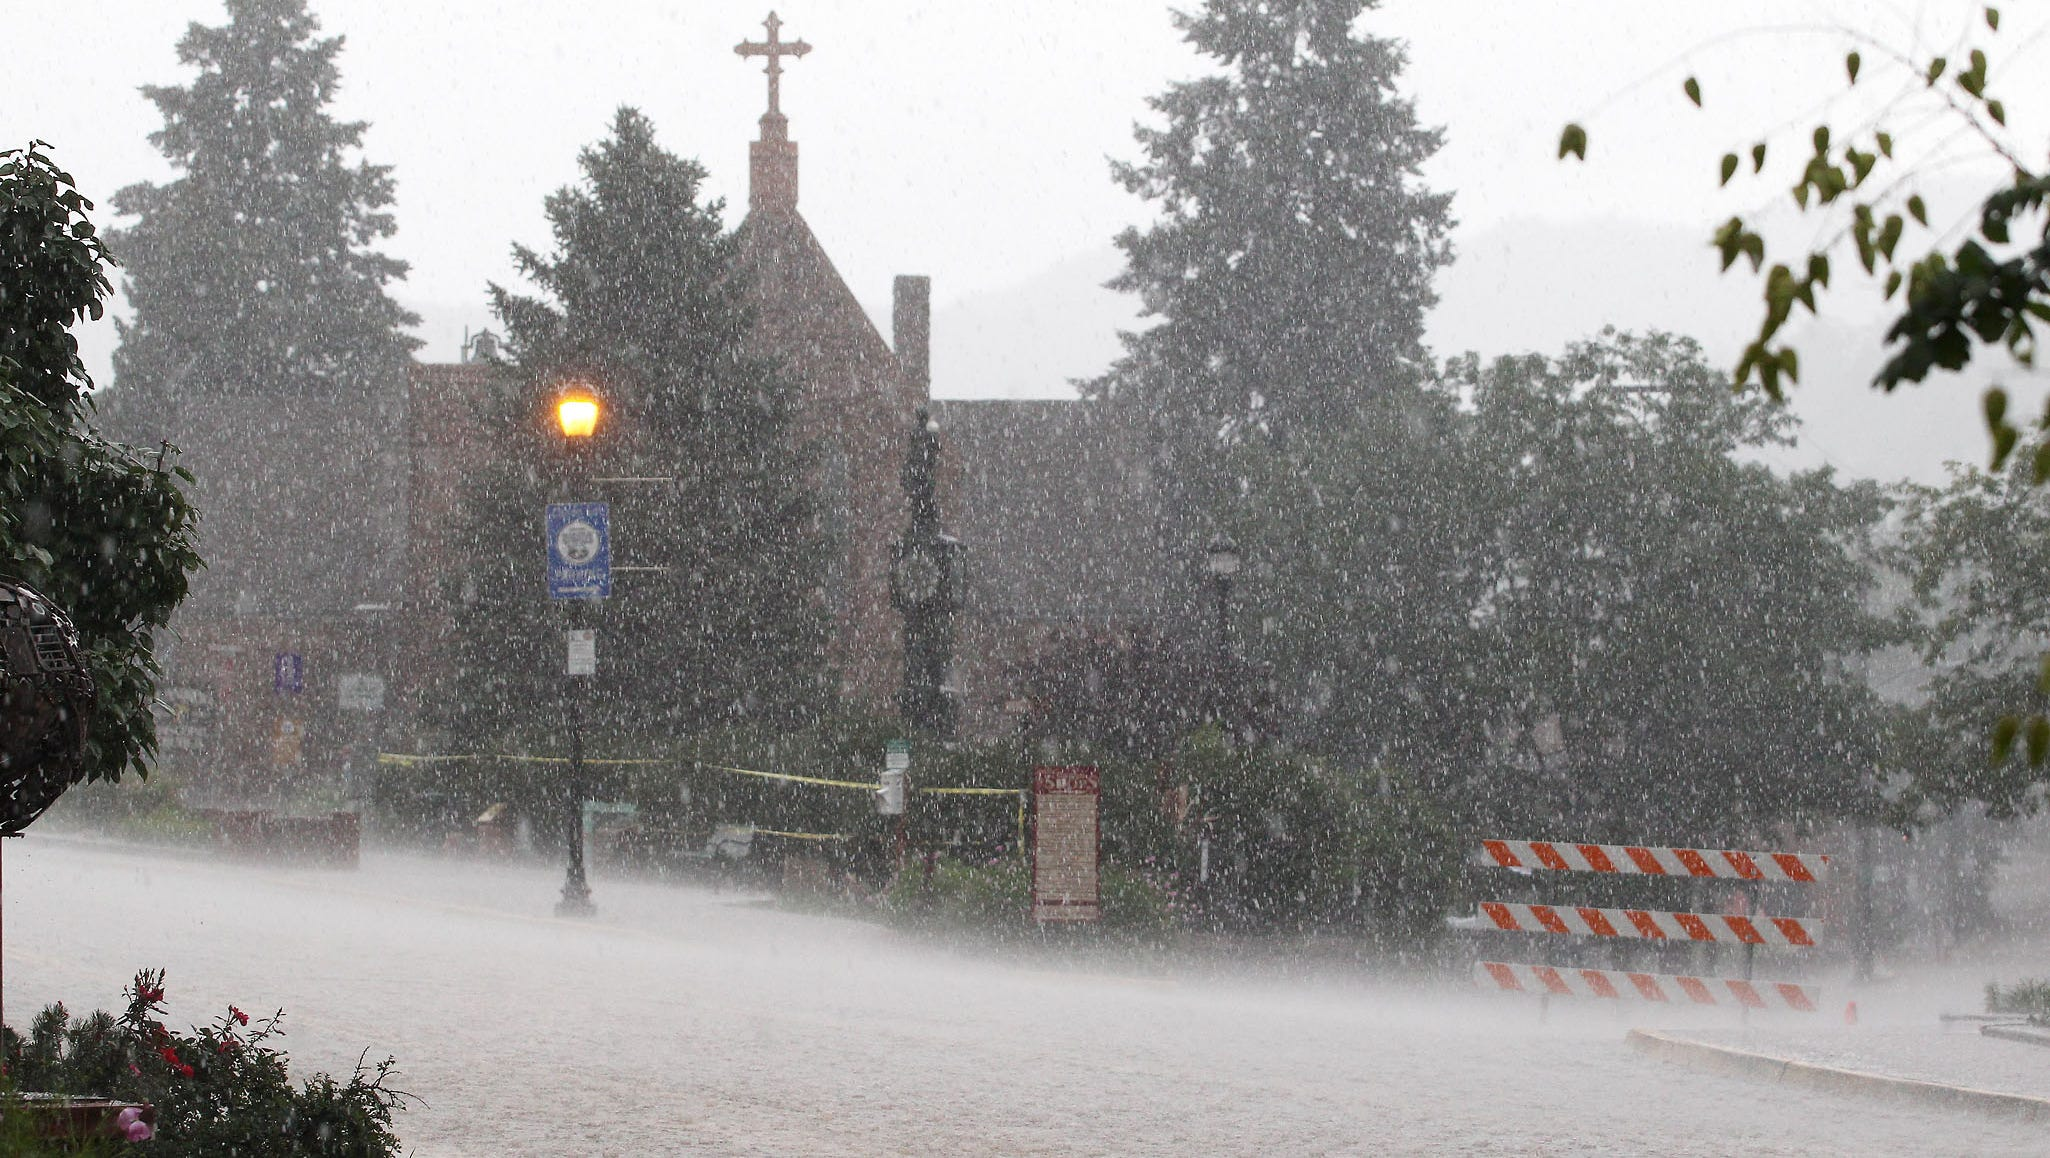 Roads are closed as rain and hail falls in Manitou Springs.